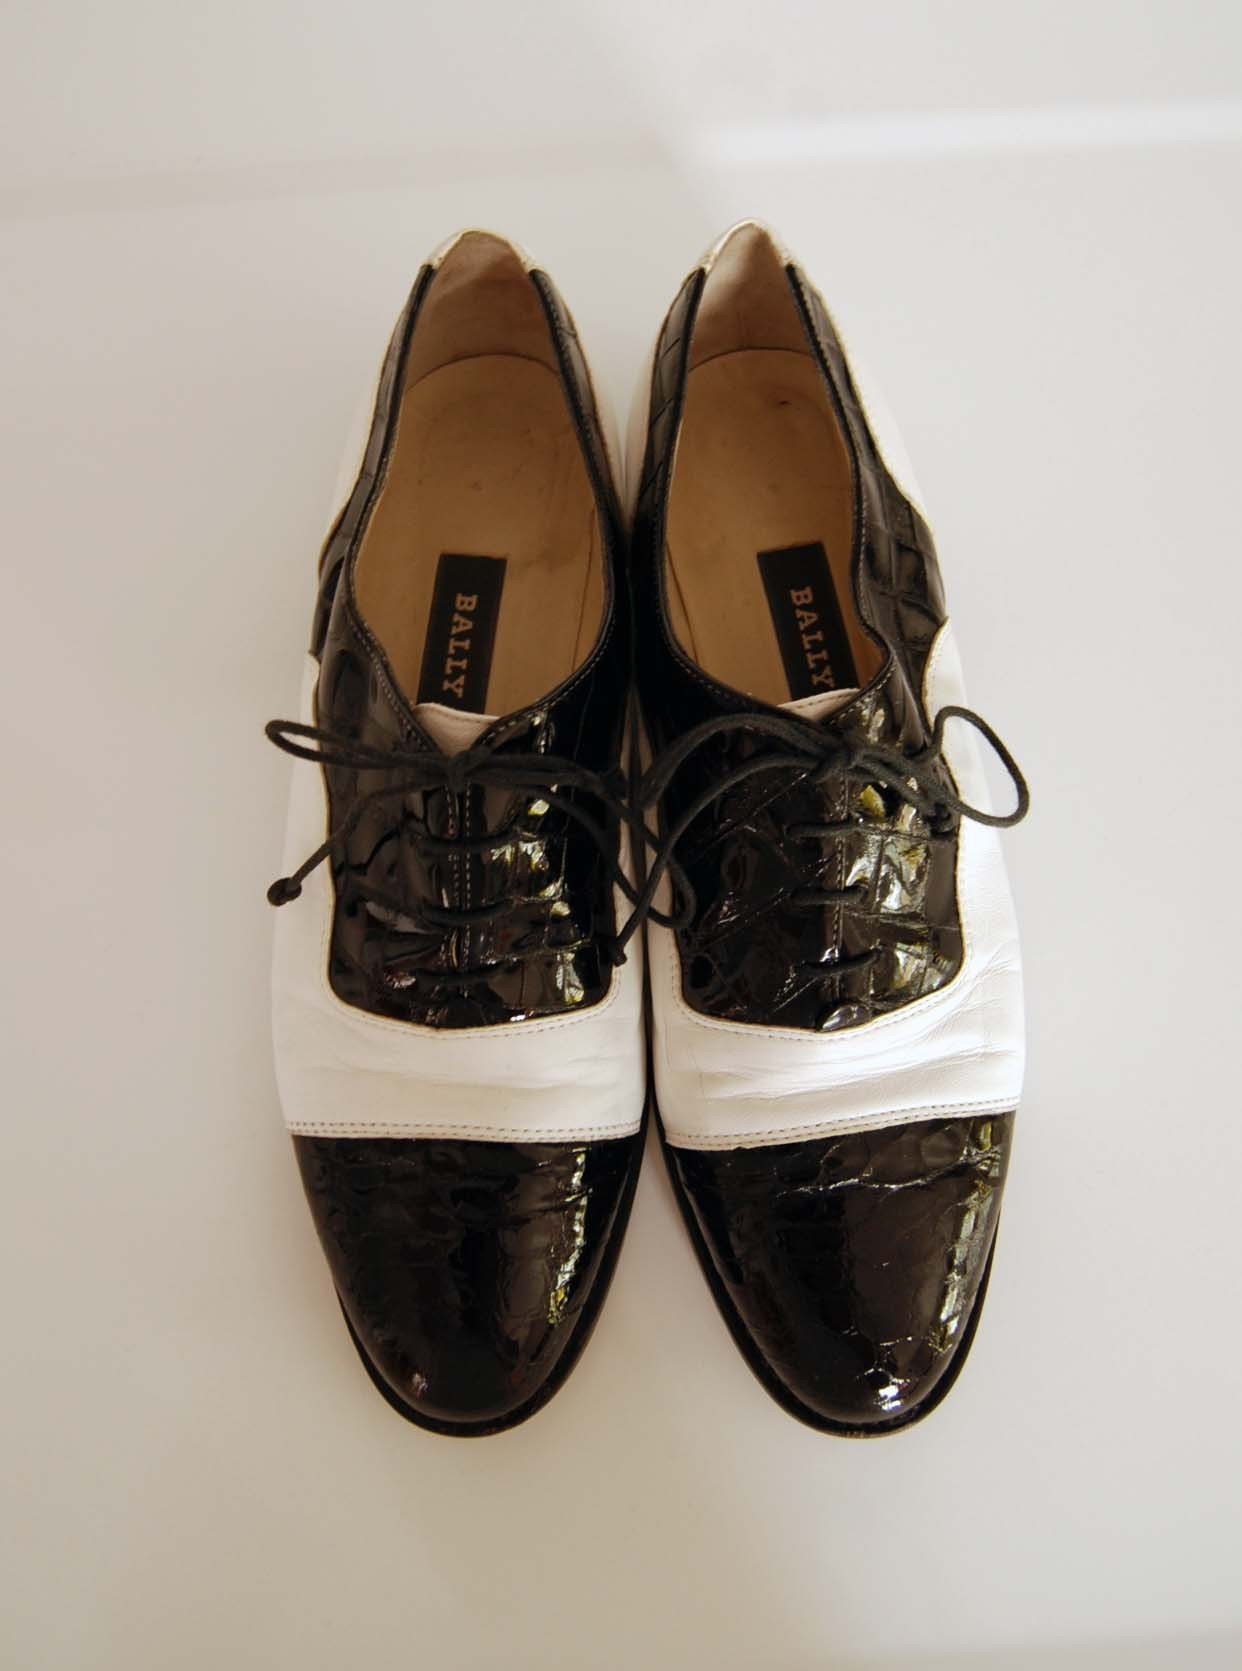 vintage bally black and white spectator shoes size 85 us